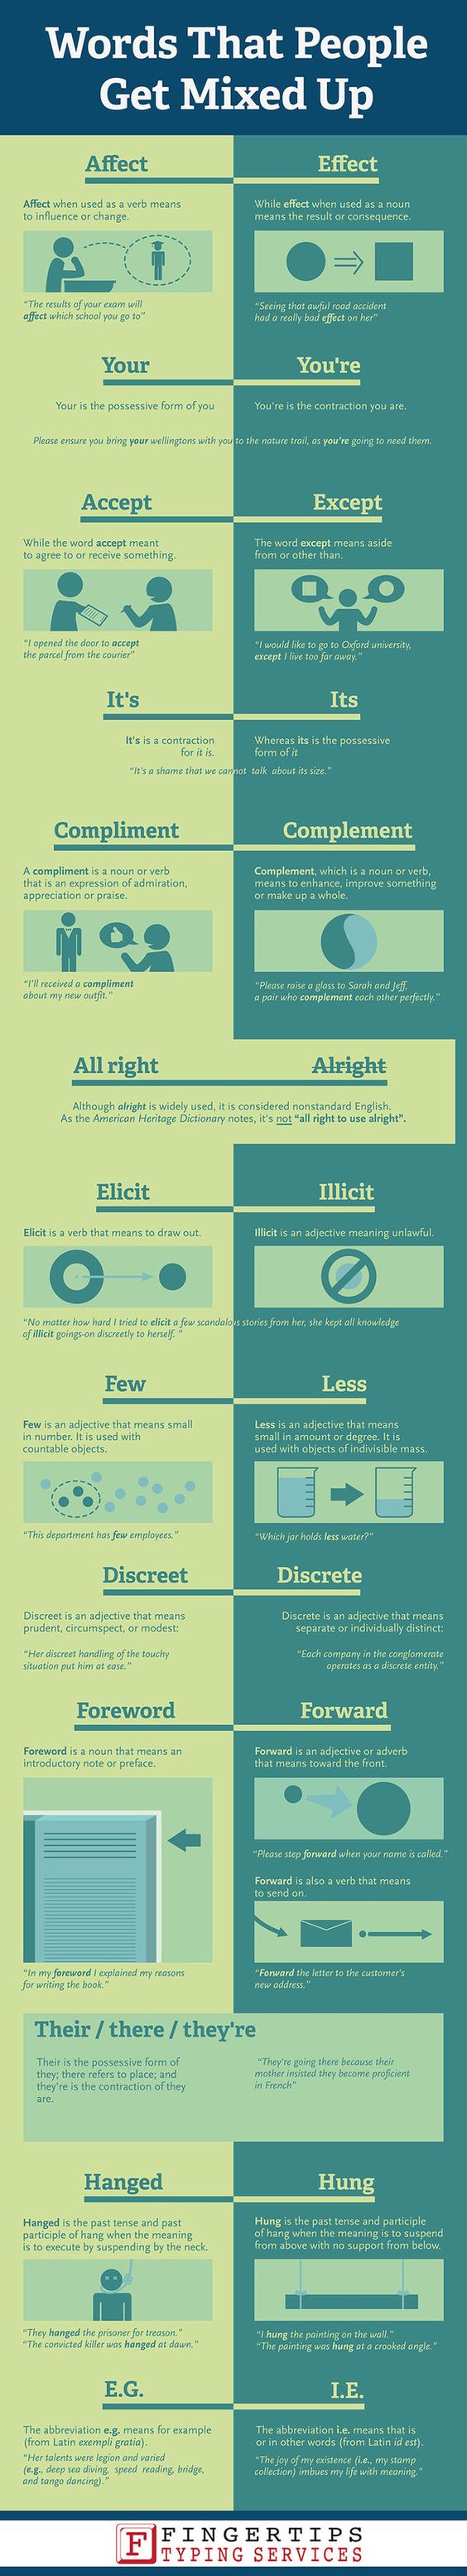 Words That People Get Mixed Up [Infographic]